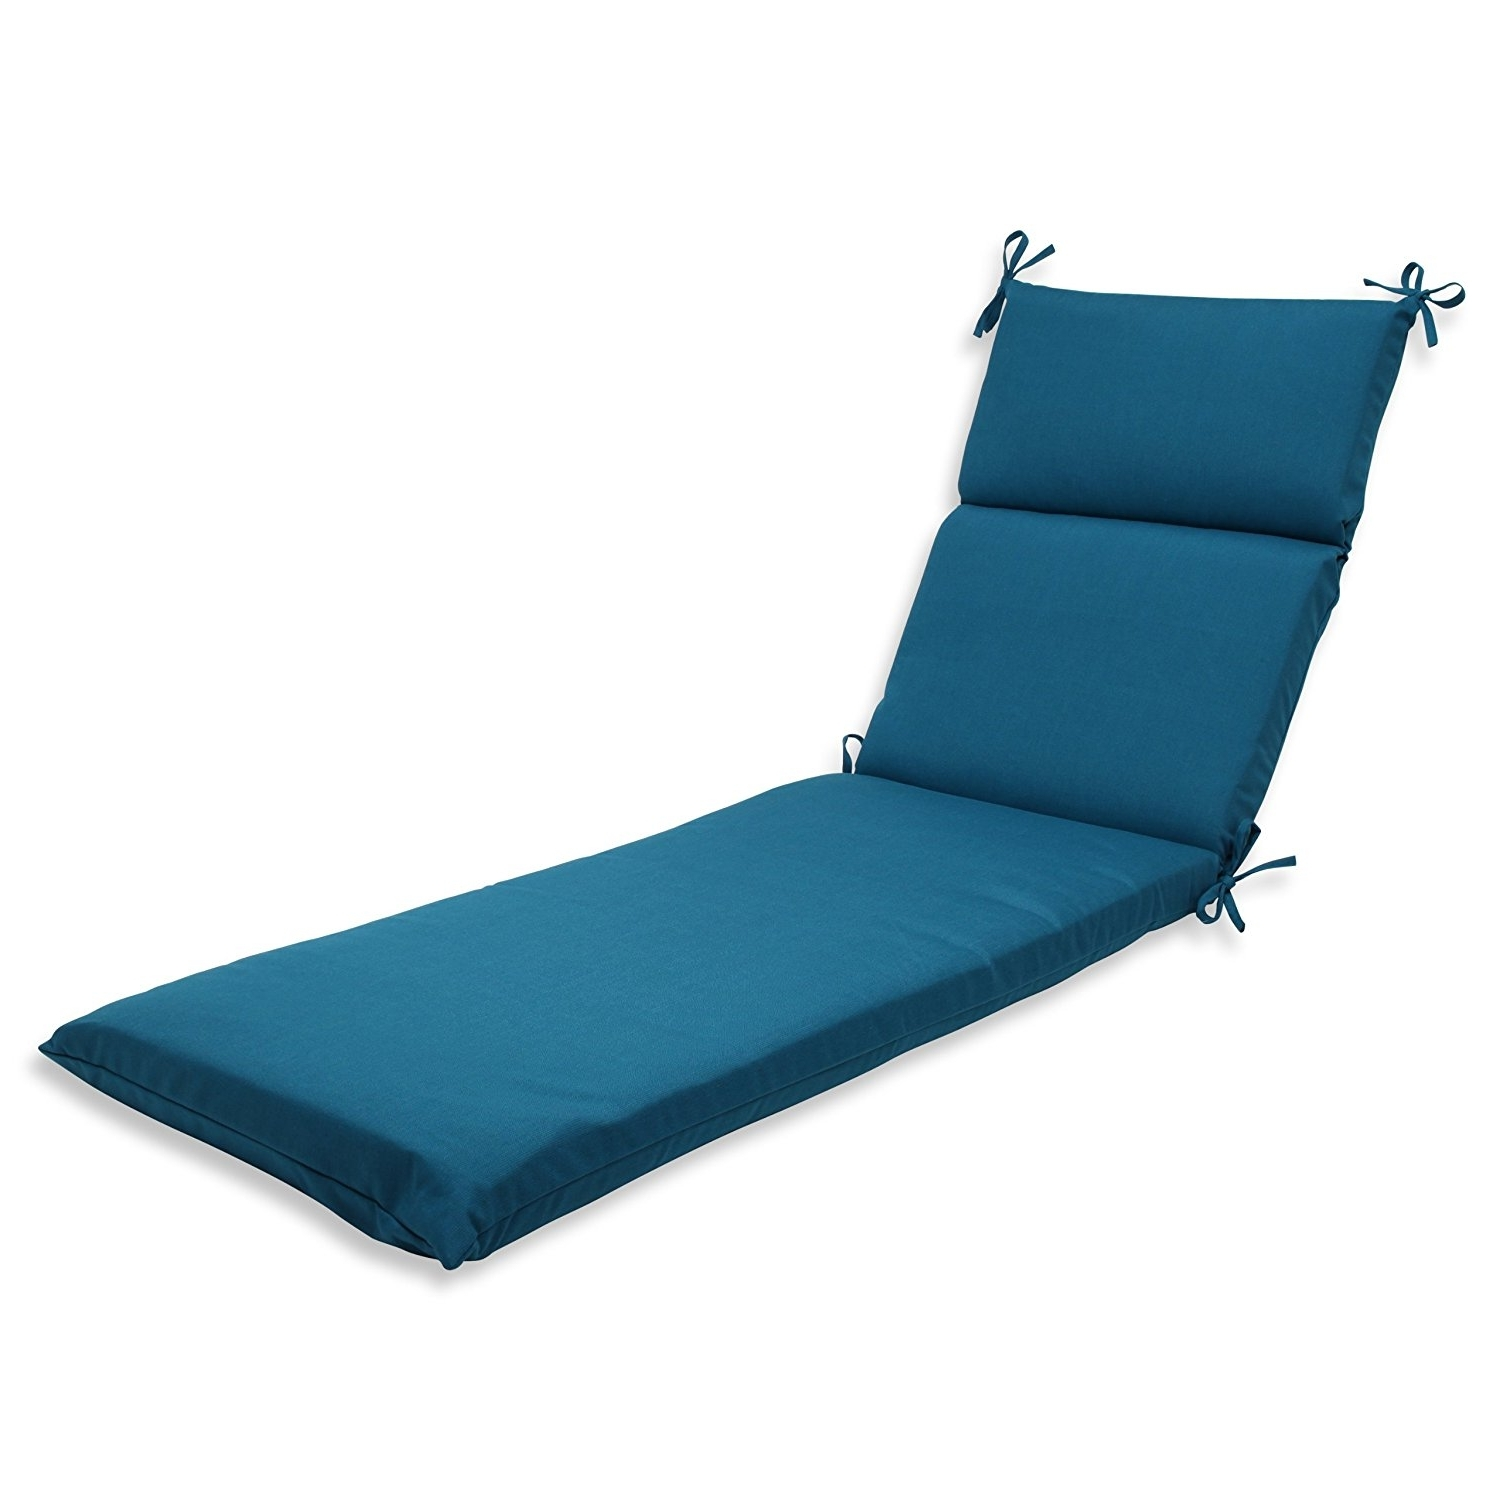 Favorite Chaise Cushions Pertaining To Amazon: Pillow Perfect Chaise Lounge Cushion With Sunbrella (View 11 of 15)